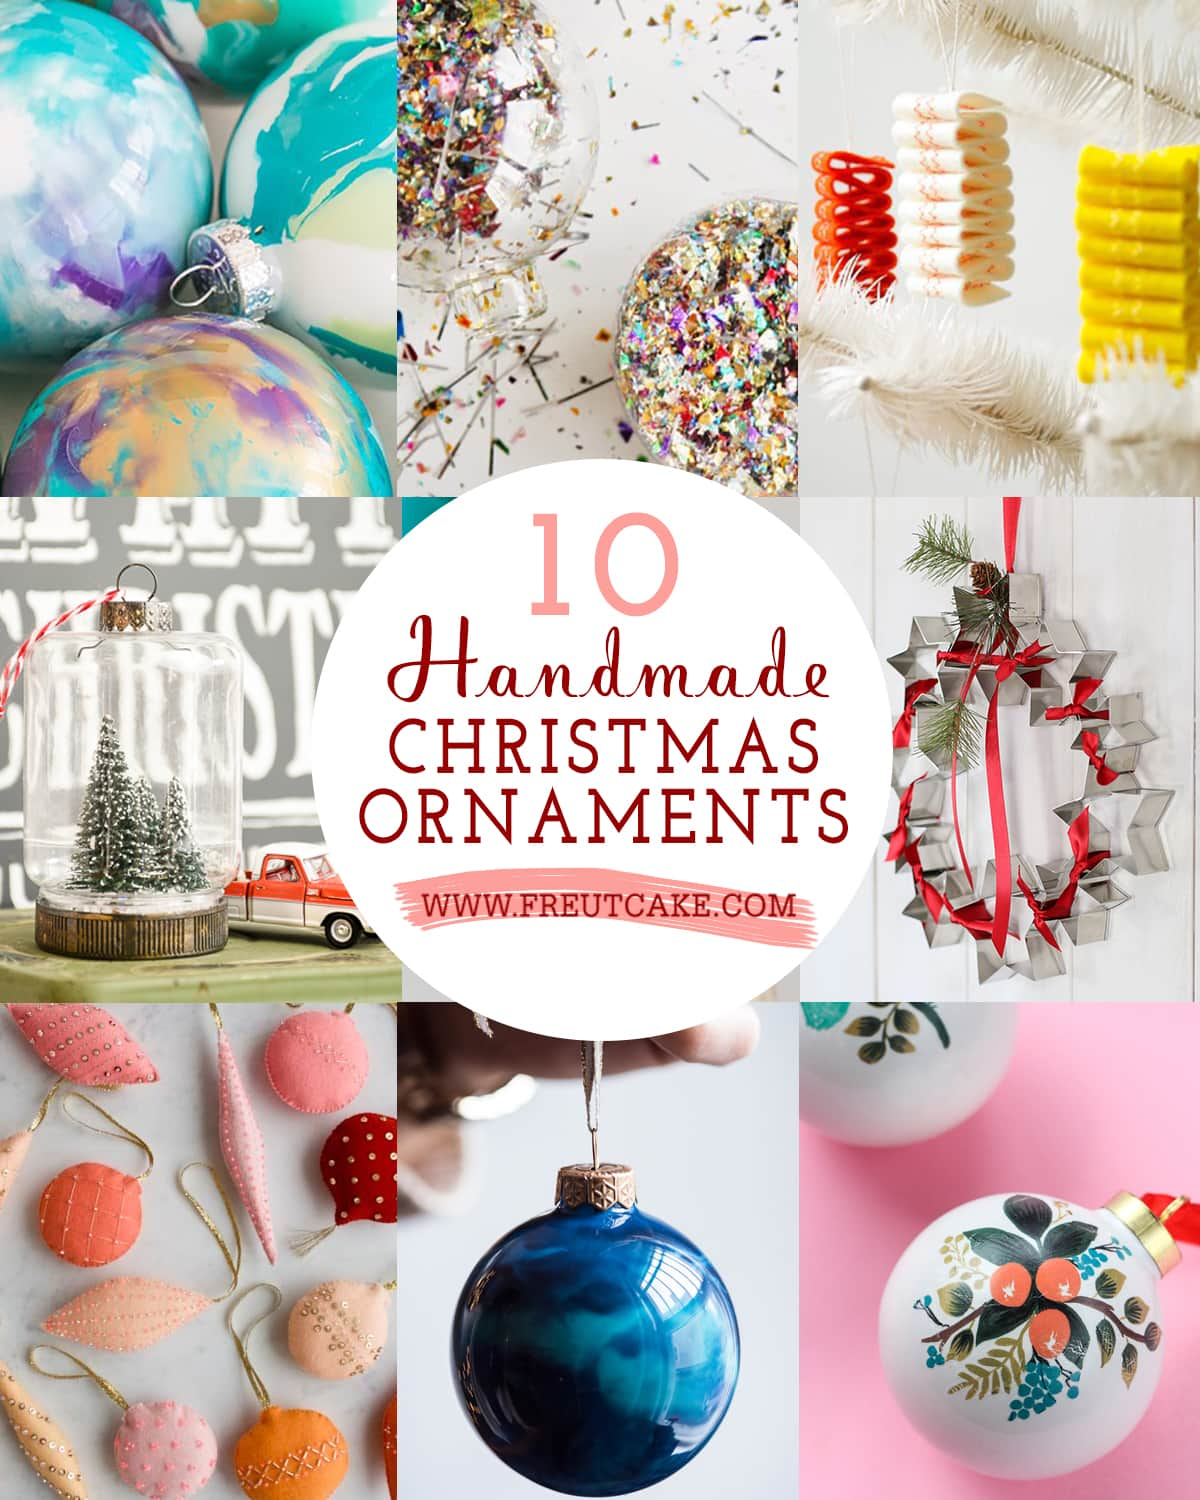 10 Handmade Christmas Ornaments